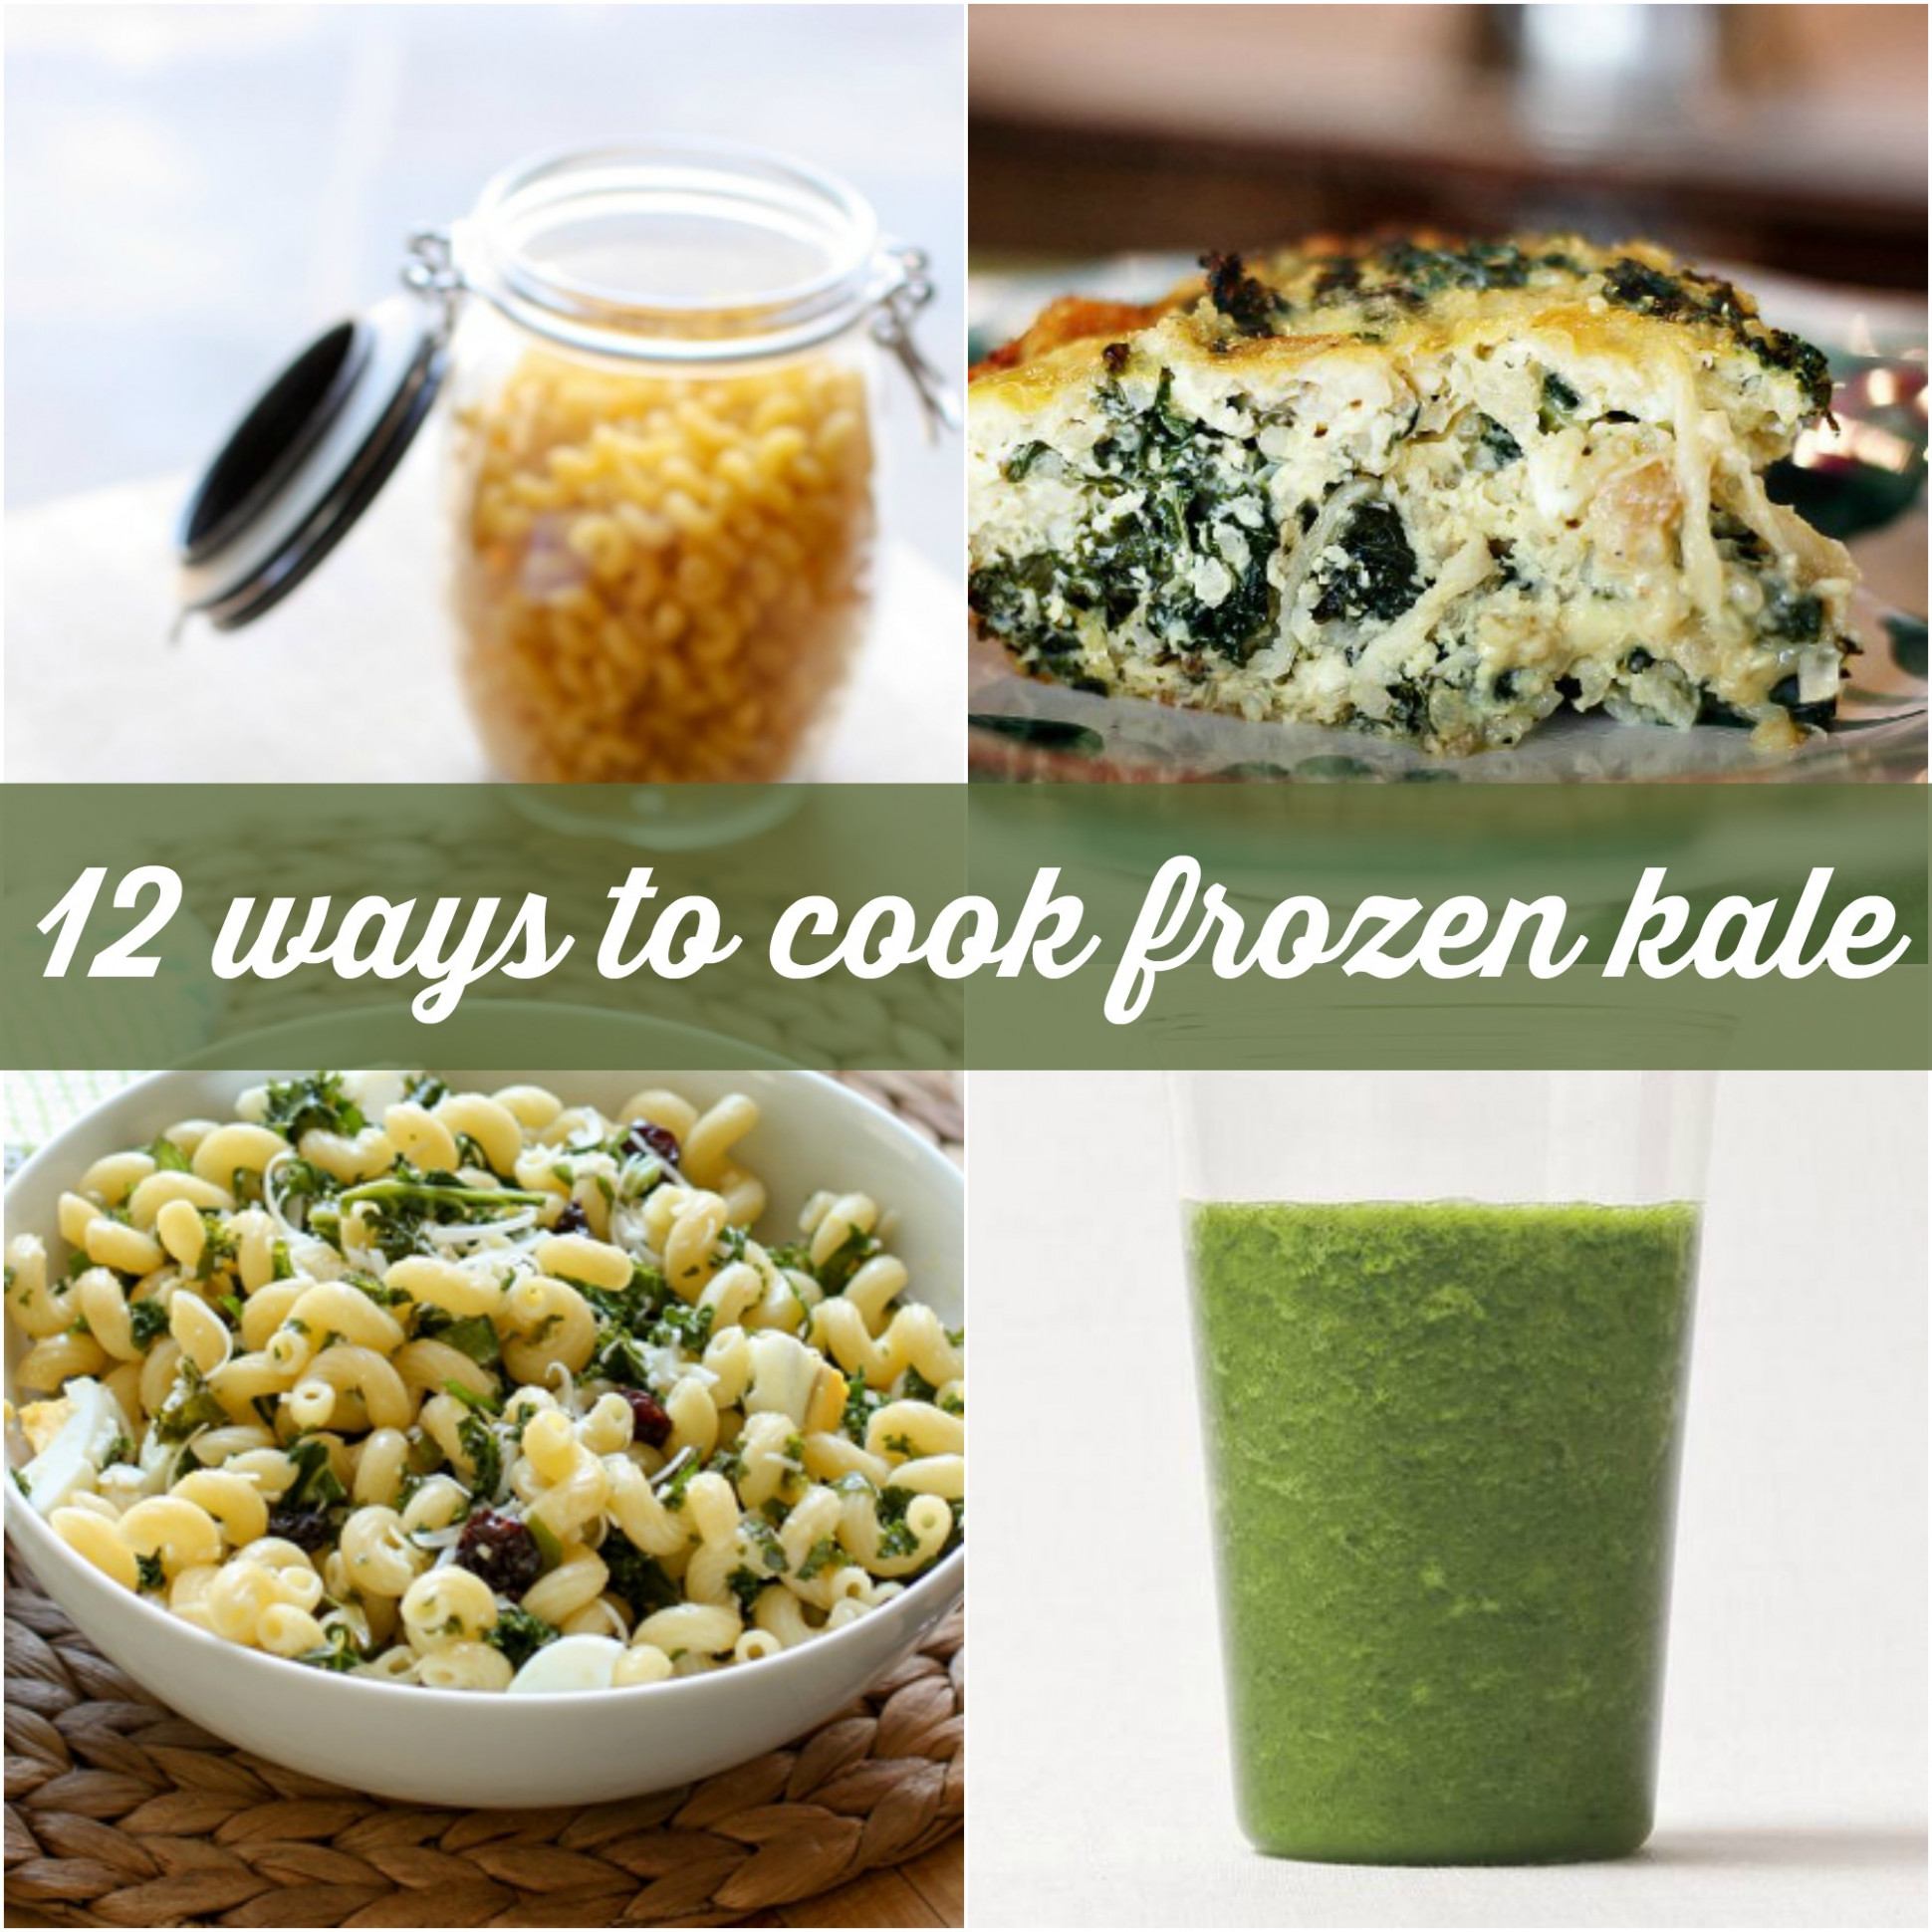 12 Delicious Ways To Cook With Frozen Kale | Food Confidence - recipes using frozen food